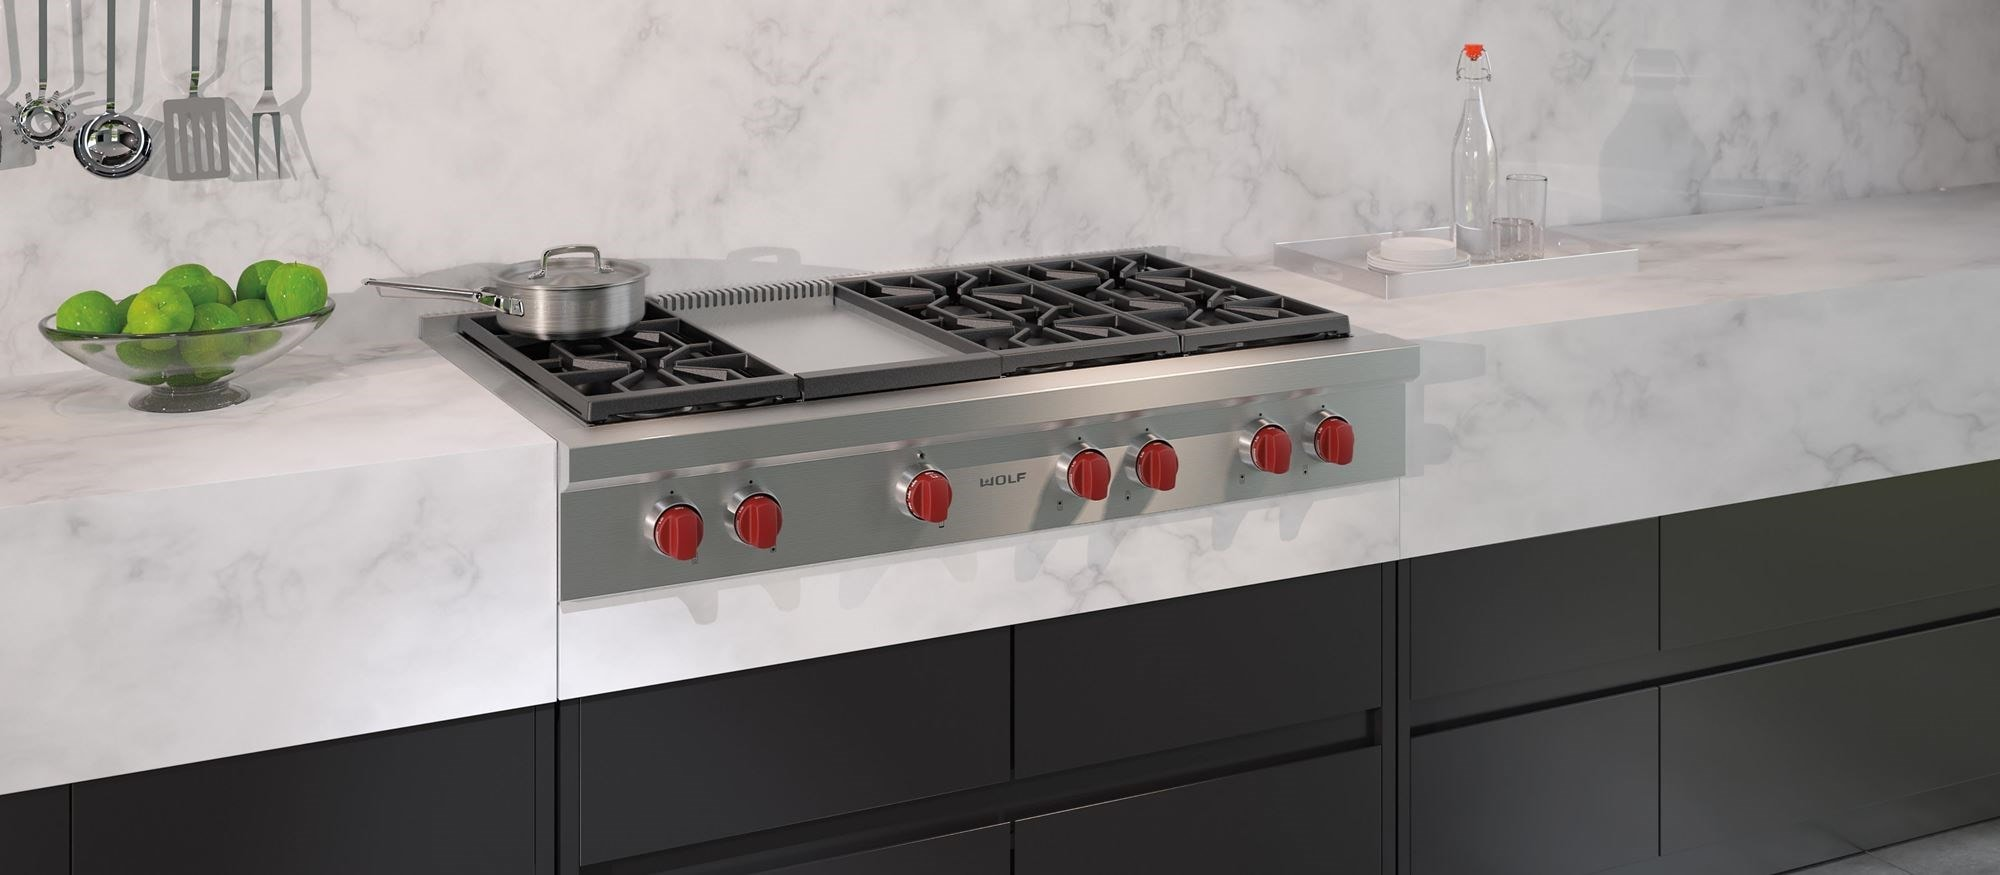 48 Sealed Burner Rangetop 6 Burners And Infrared Griddle